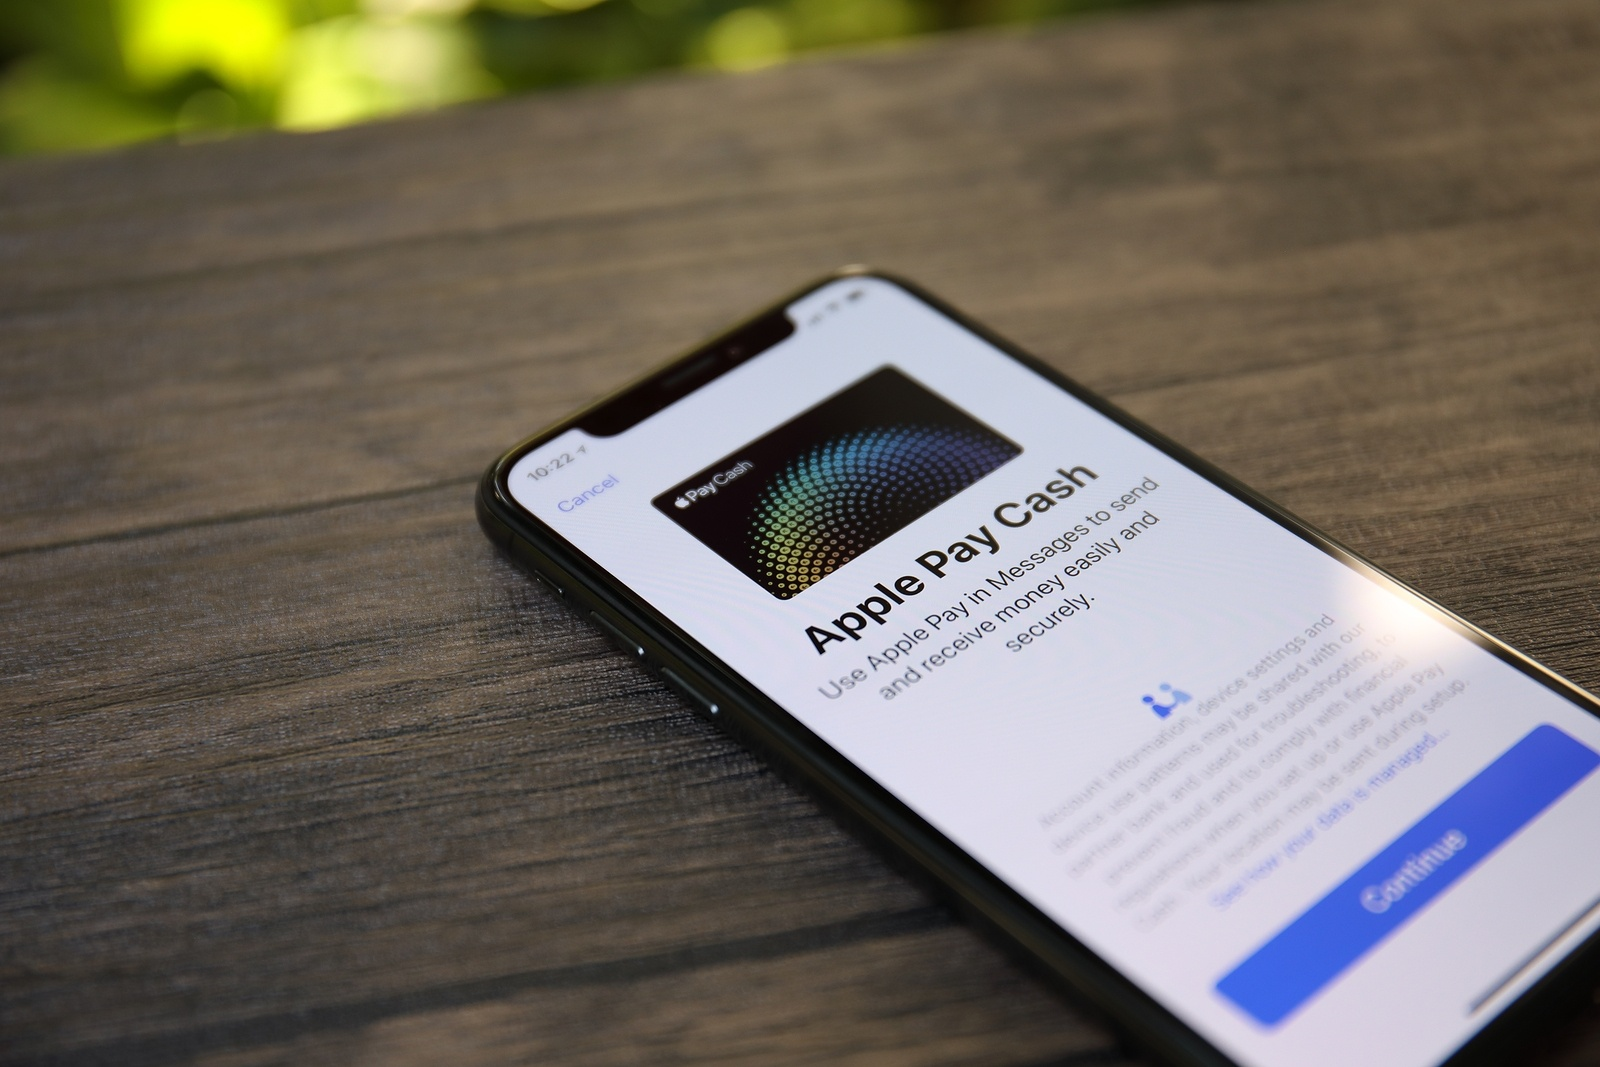 iPhone X with Apple Pay on the screen © Denys Prykhodov